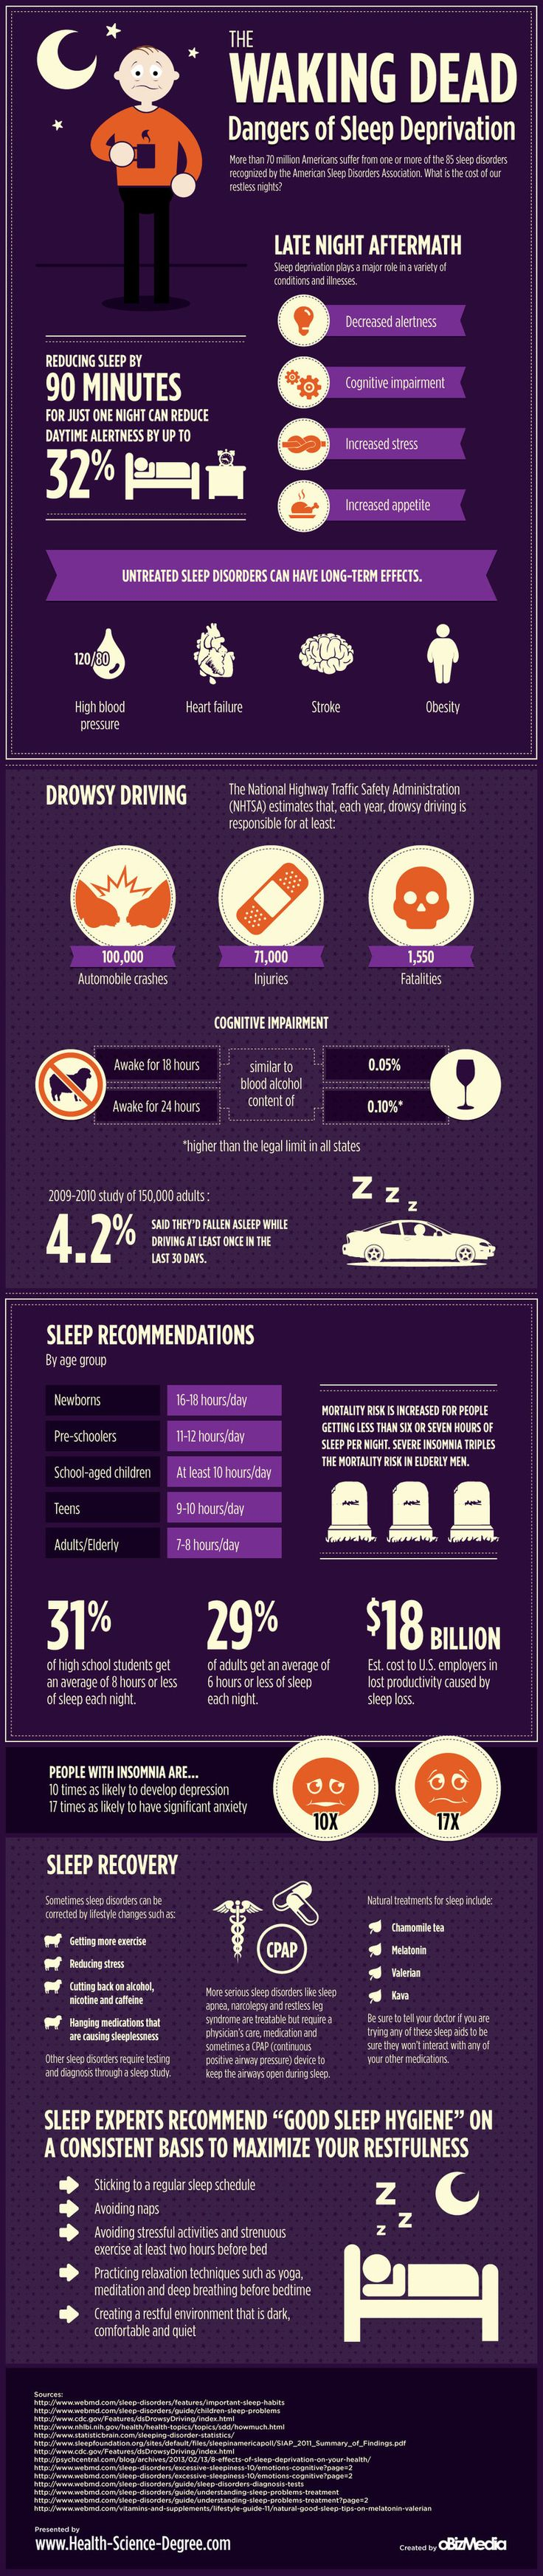 infographic: waking dead - the dangers of sleep deprivation (mindbodygreen.com)